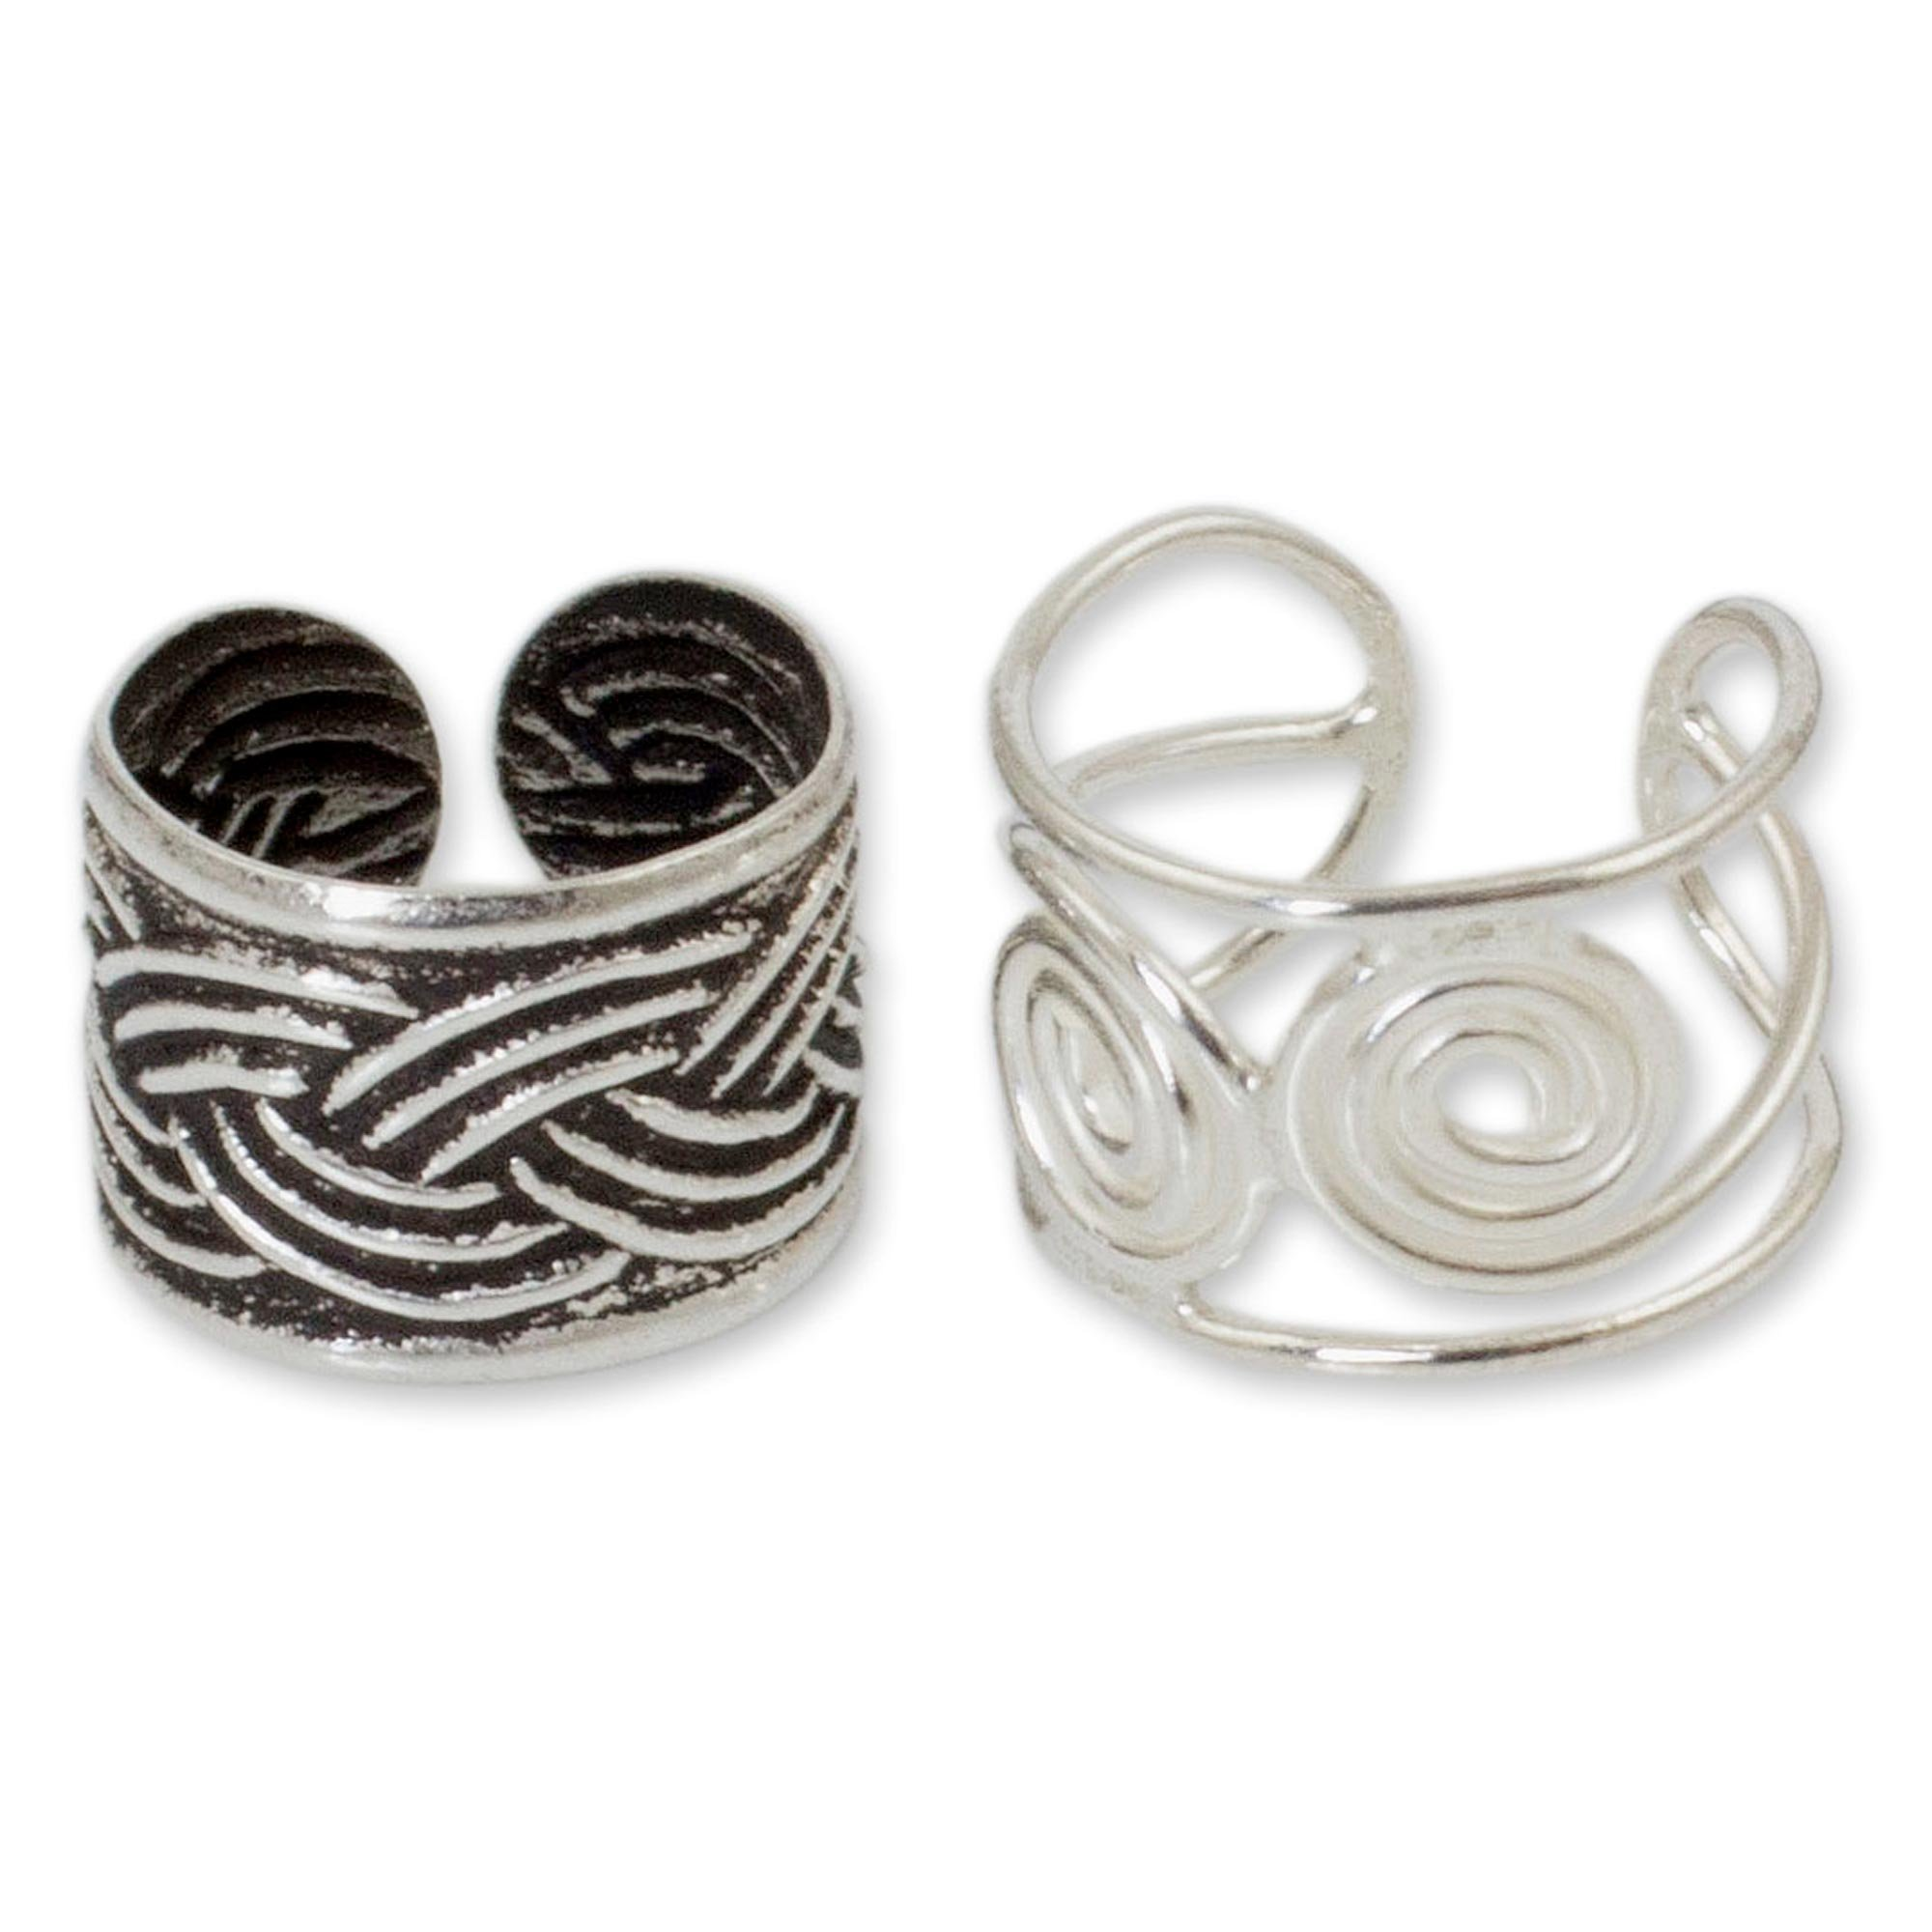 NOVICA Set of 2 Adjustable .925 Sterling Silver Ear Cuffs, Contrasts' (pair)